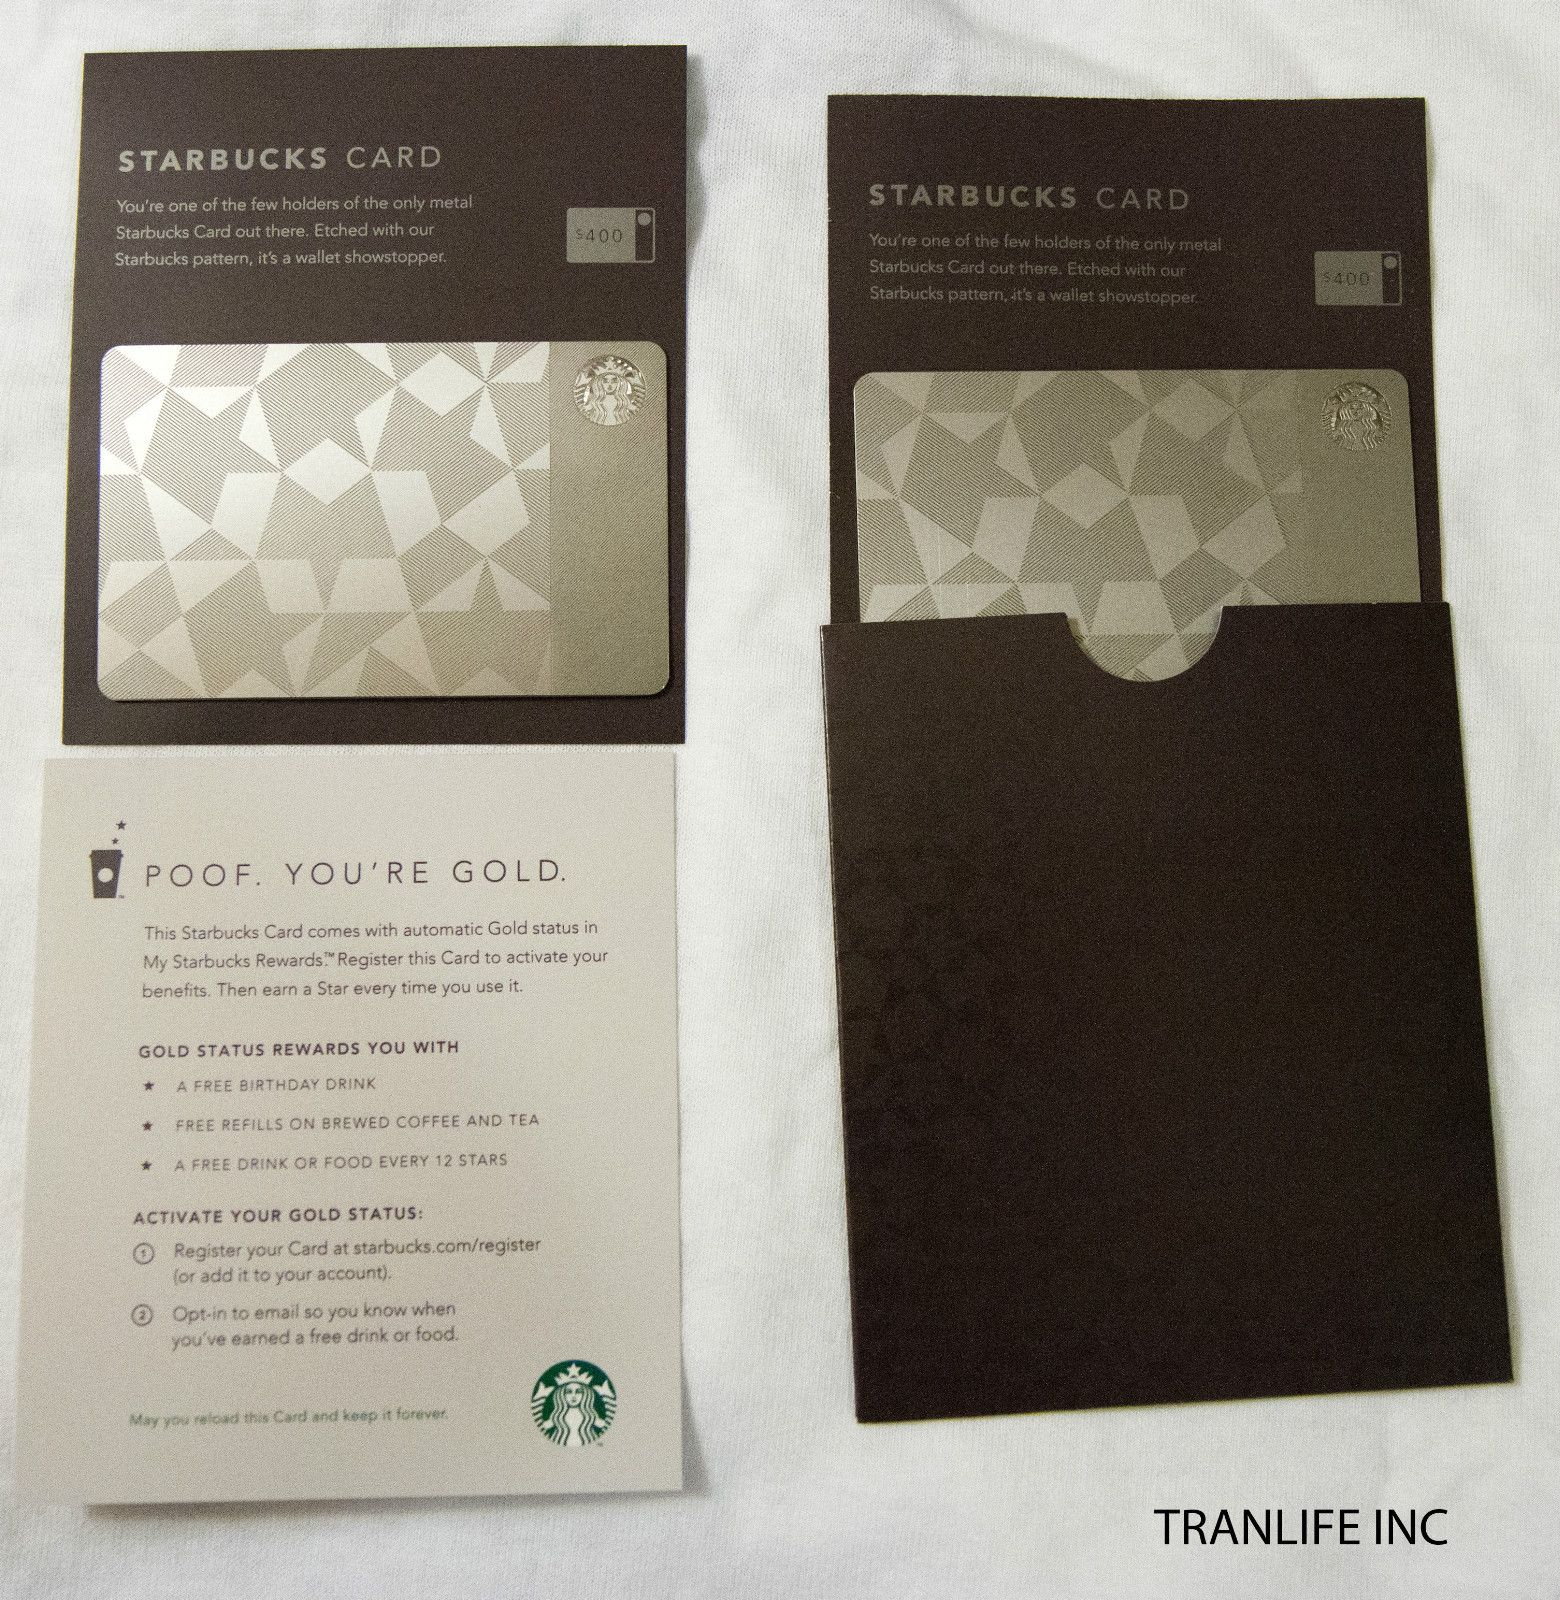 Starbucks Limited Edition Metal Gift Card Stainless Steel $0